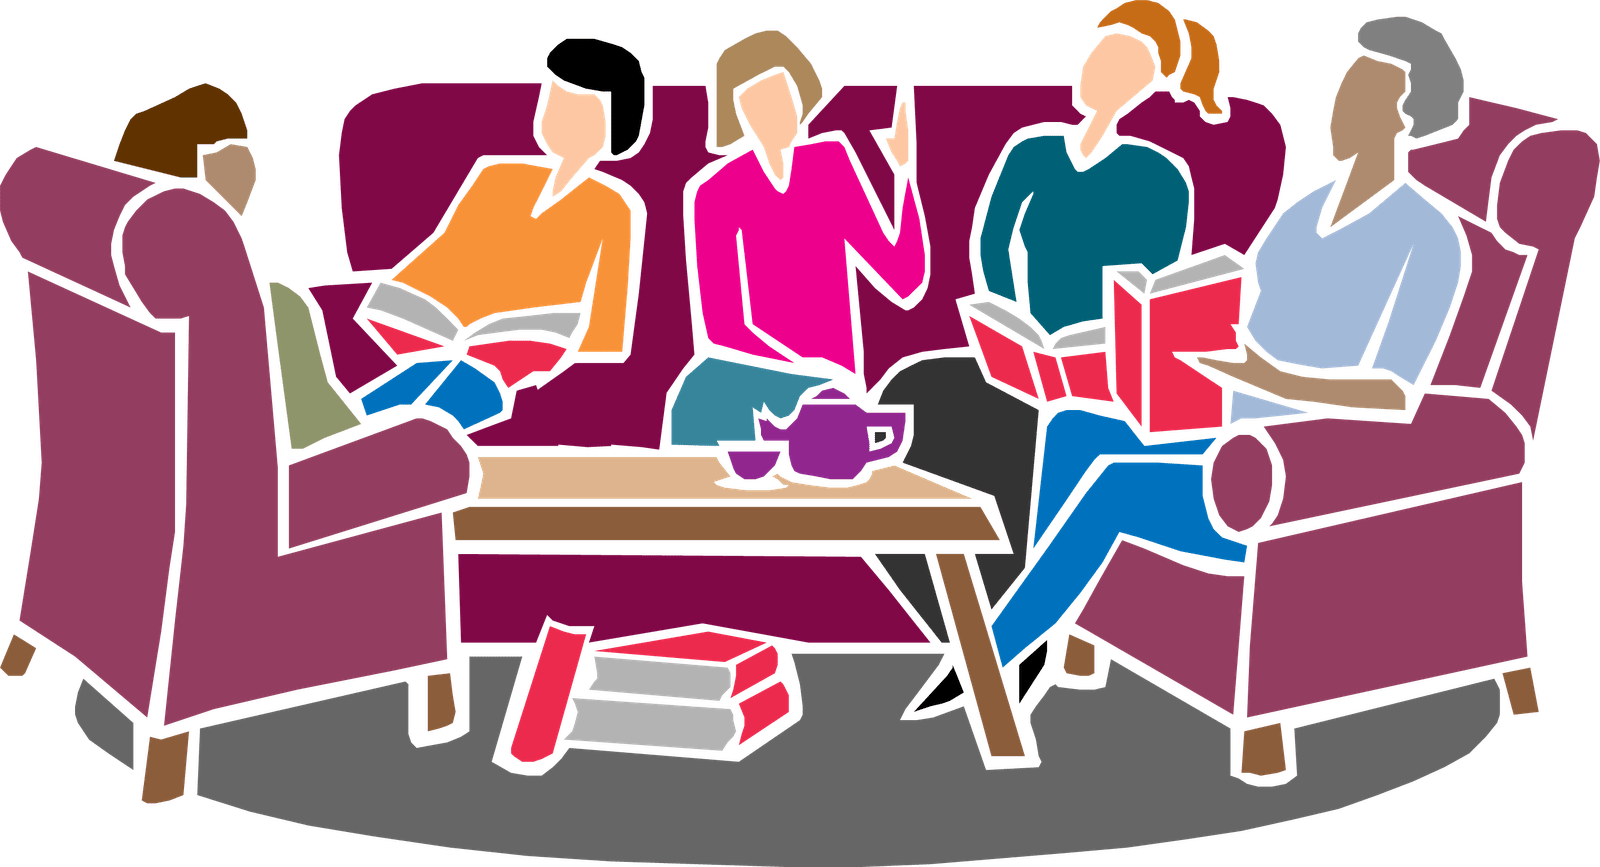 Comedy drama reading group. Furniture clipart book table